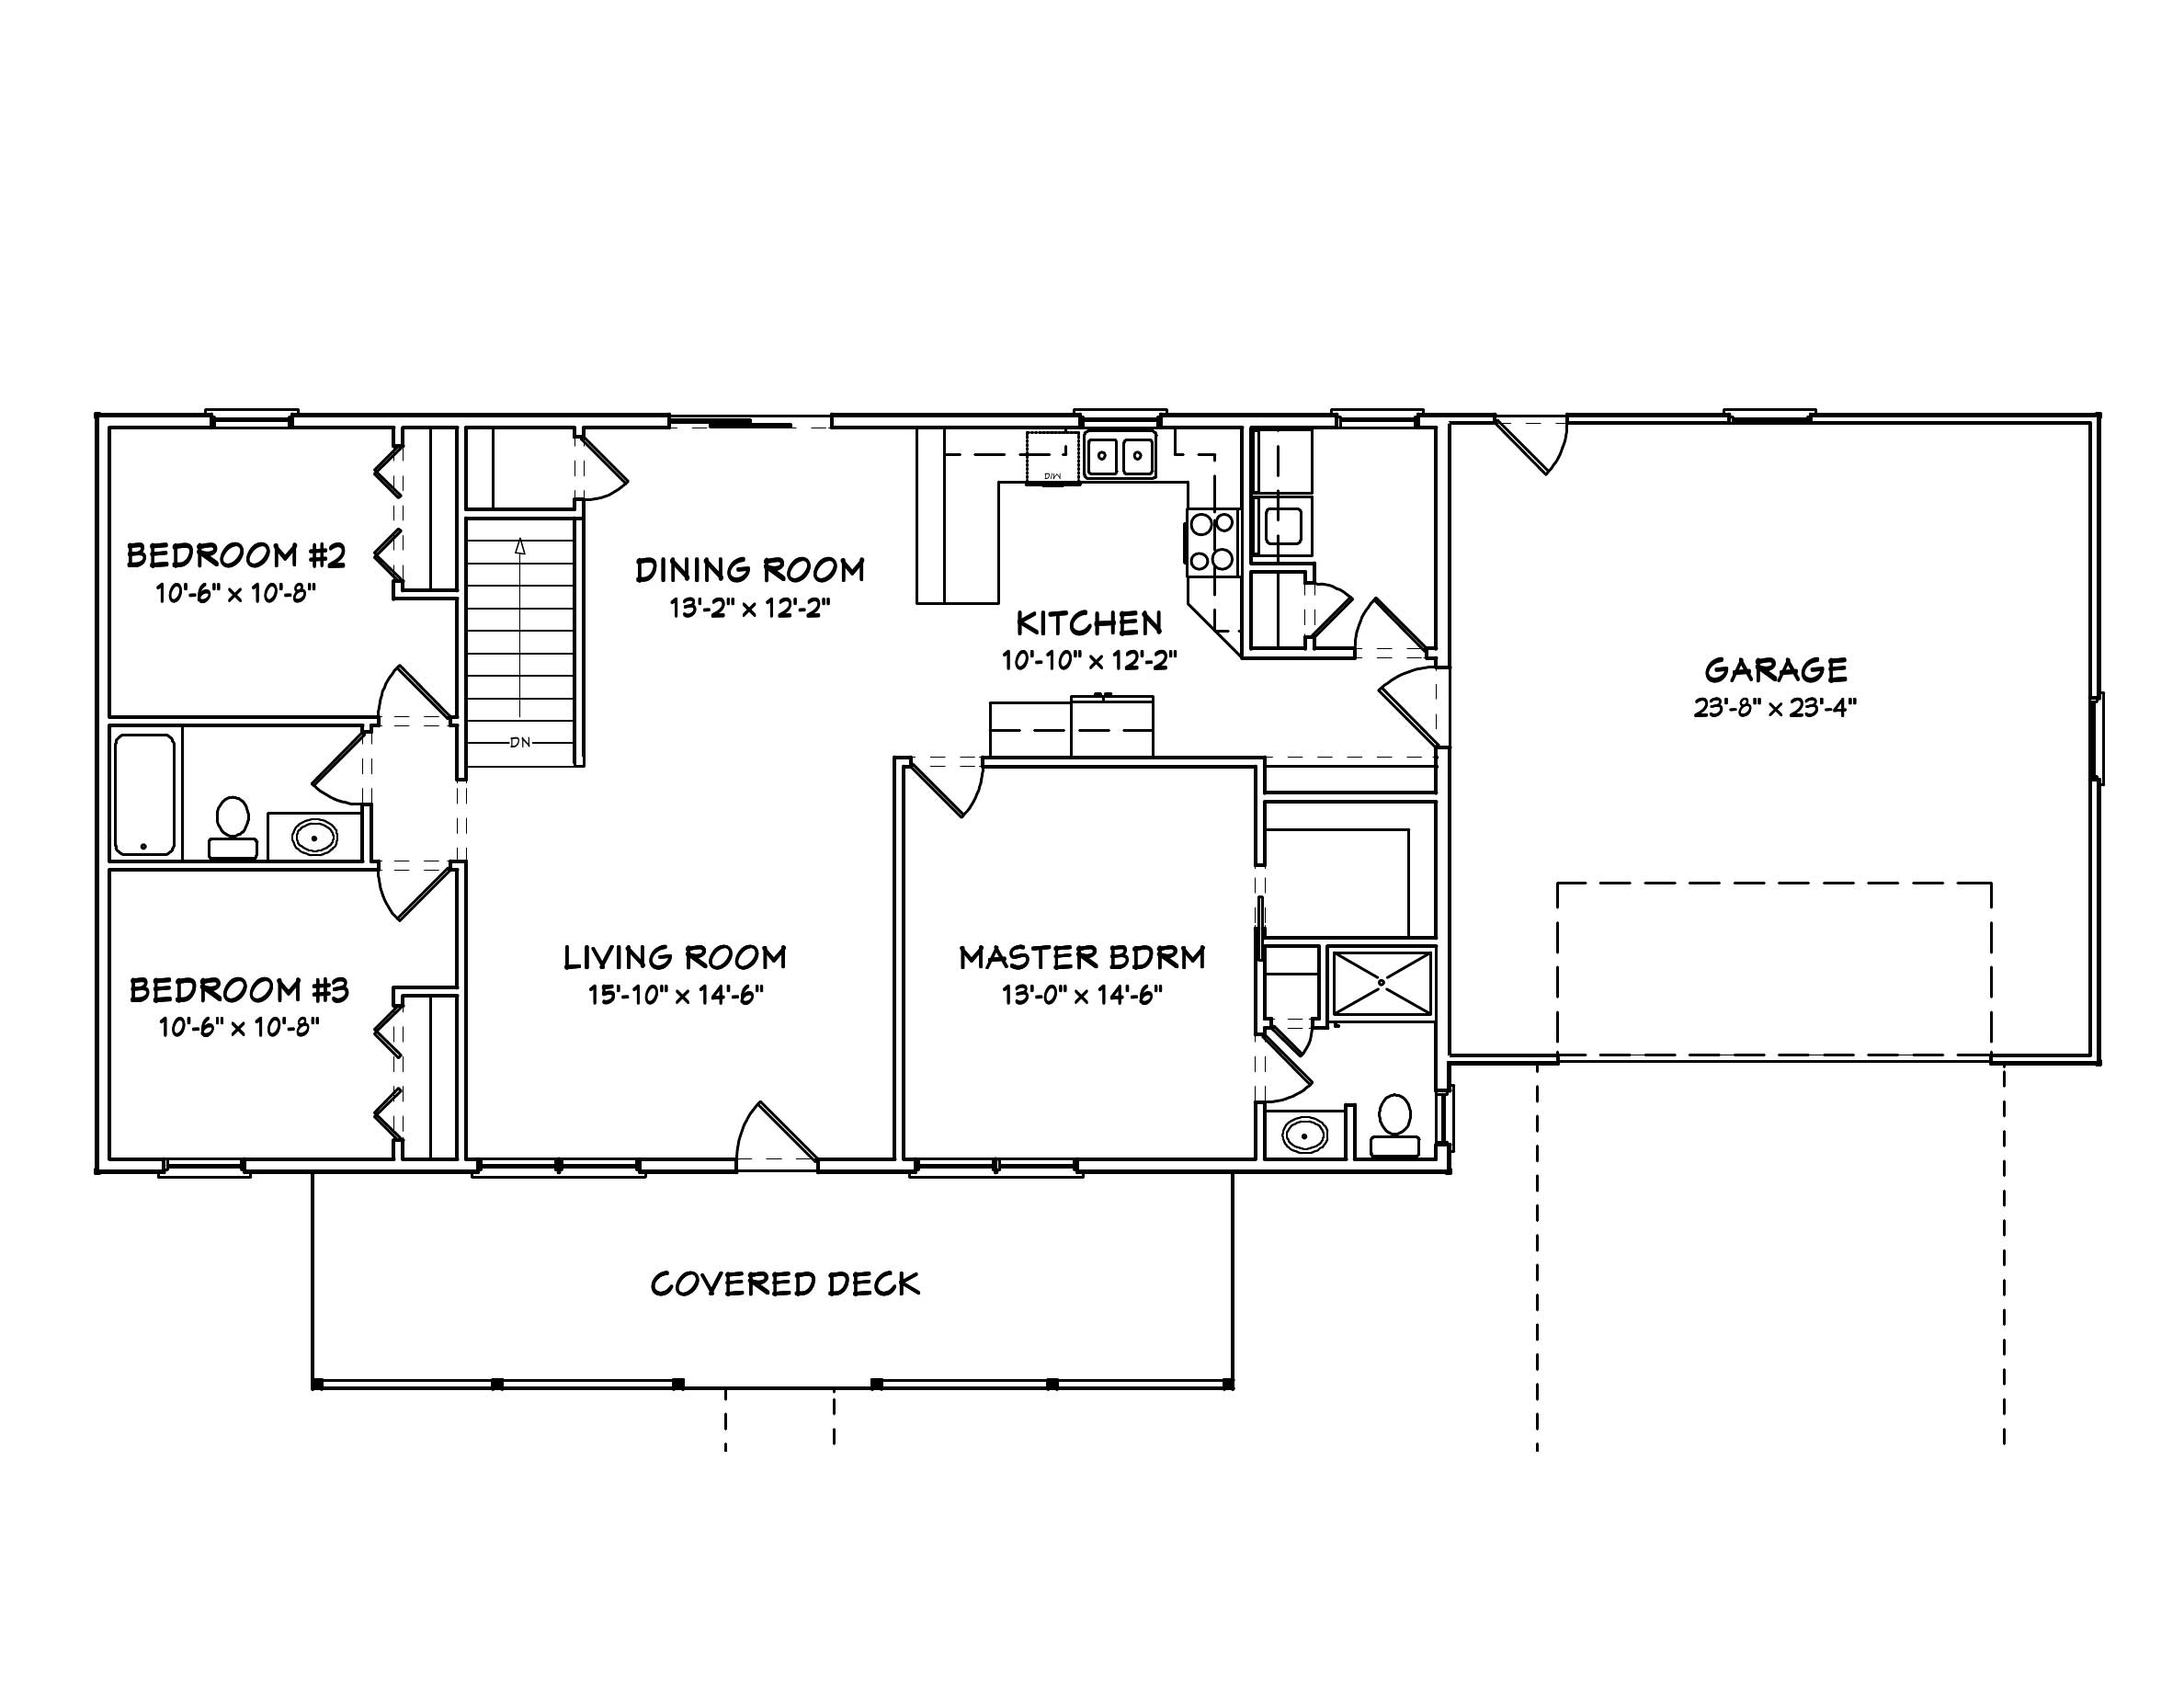 Ranch home plans home design mas1023 - Average square footage of a 3 bedroom house ...